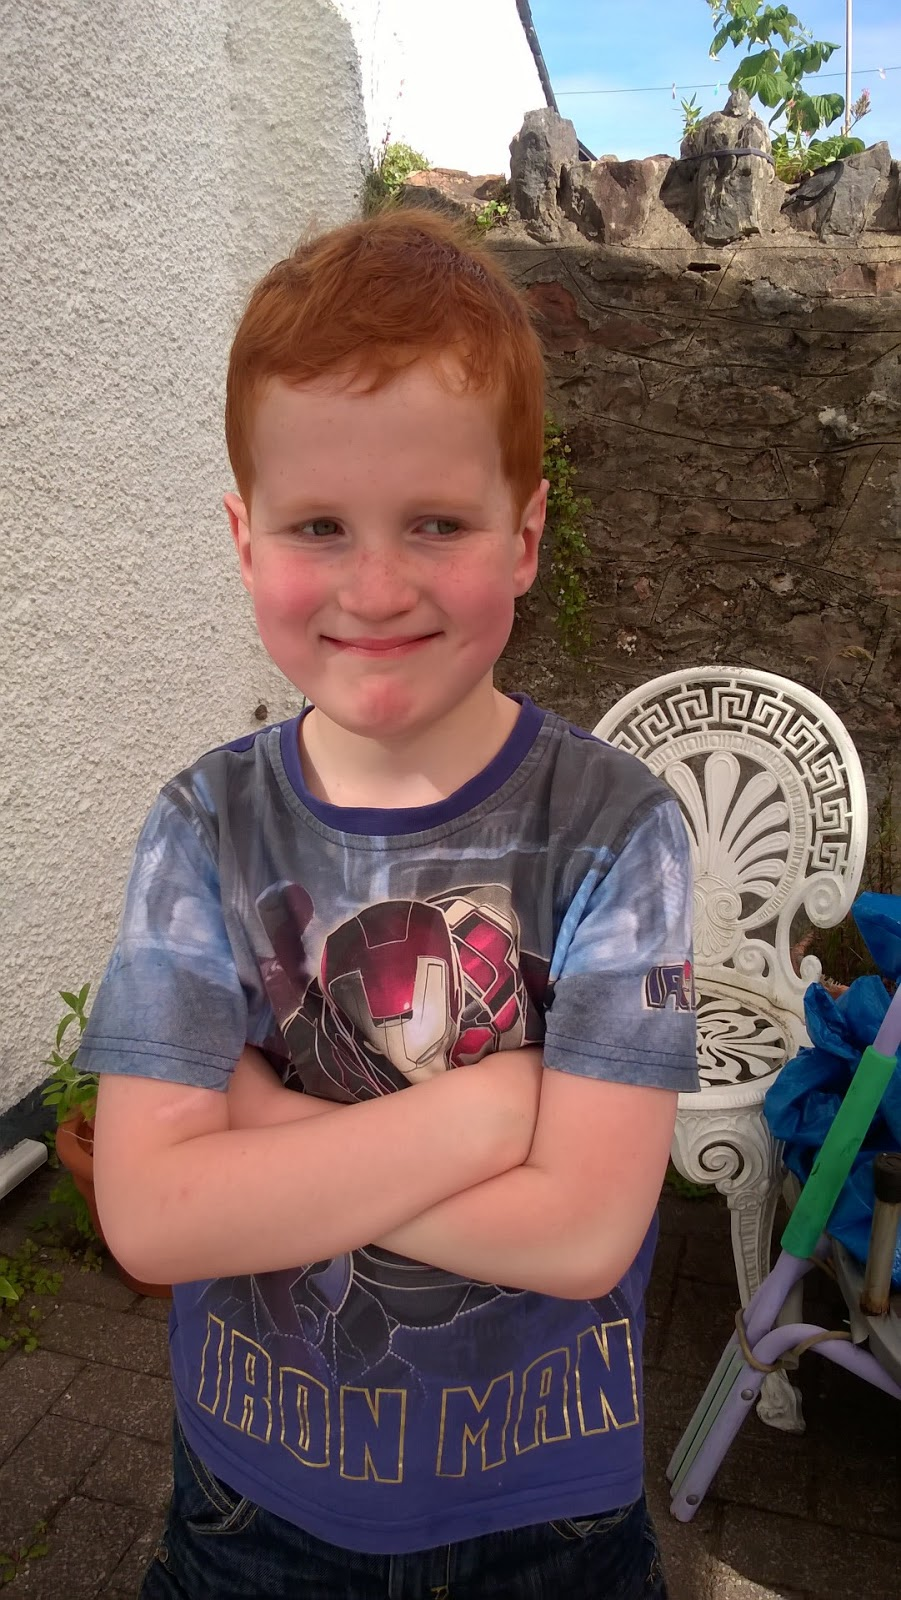 left out on a playdate - Ieuan modelling his new haircut